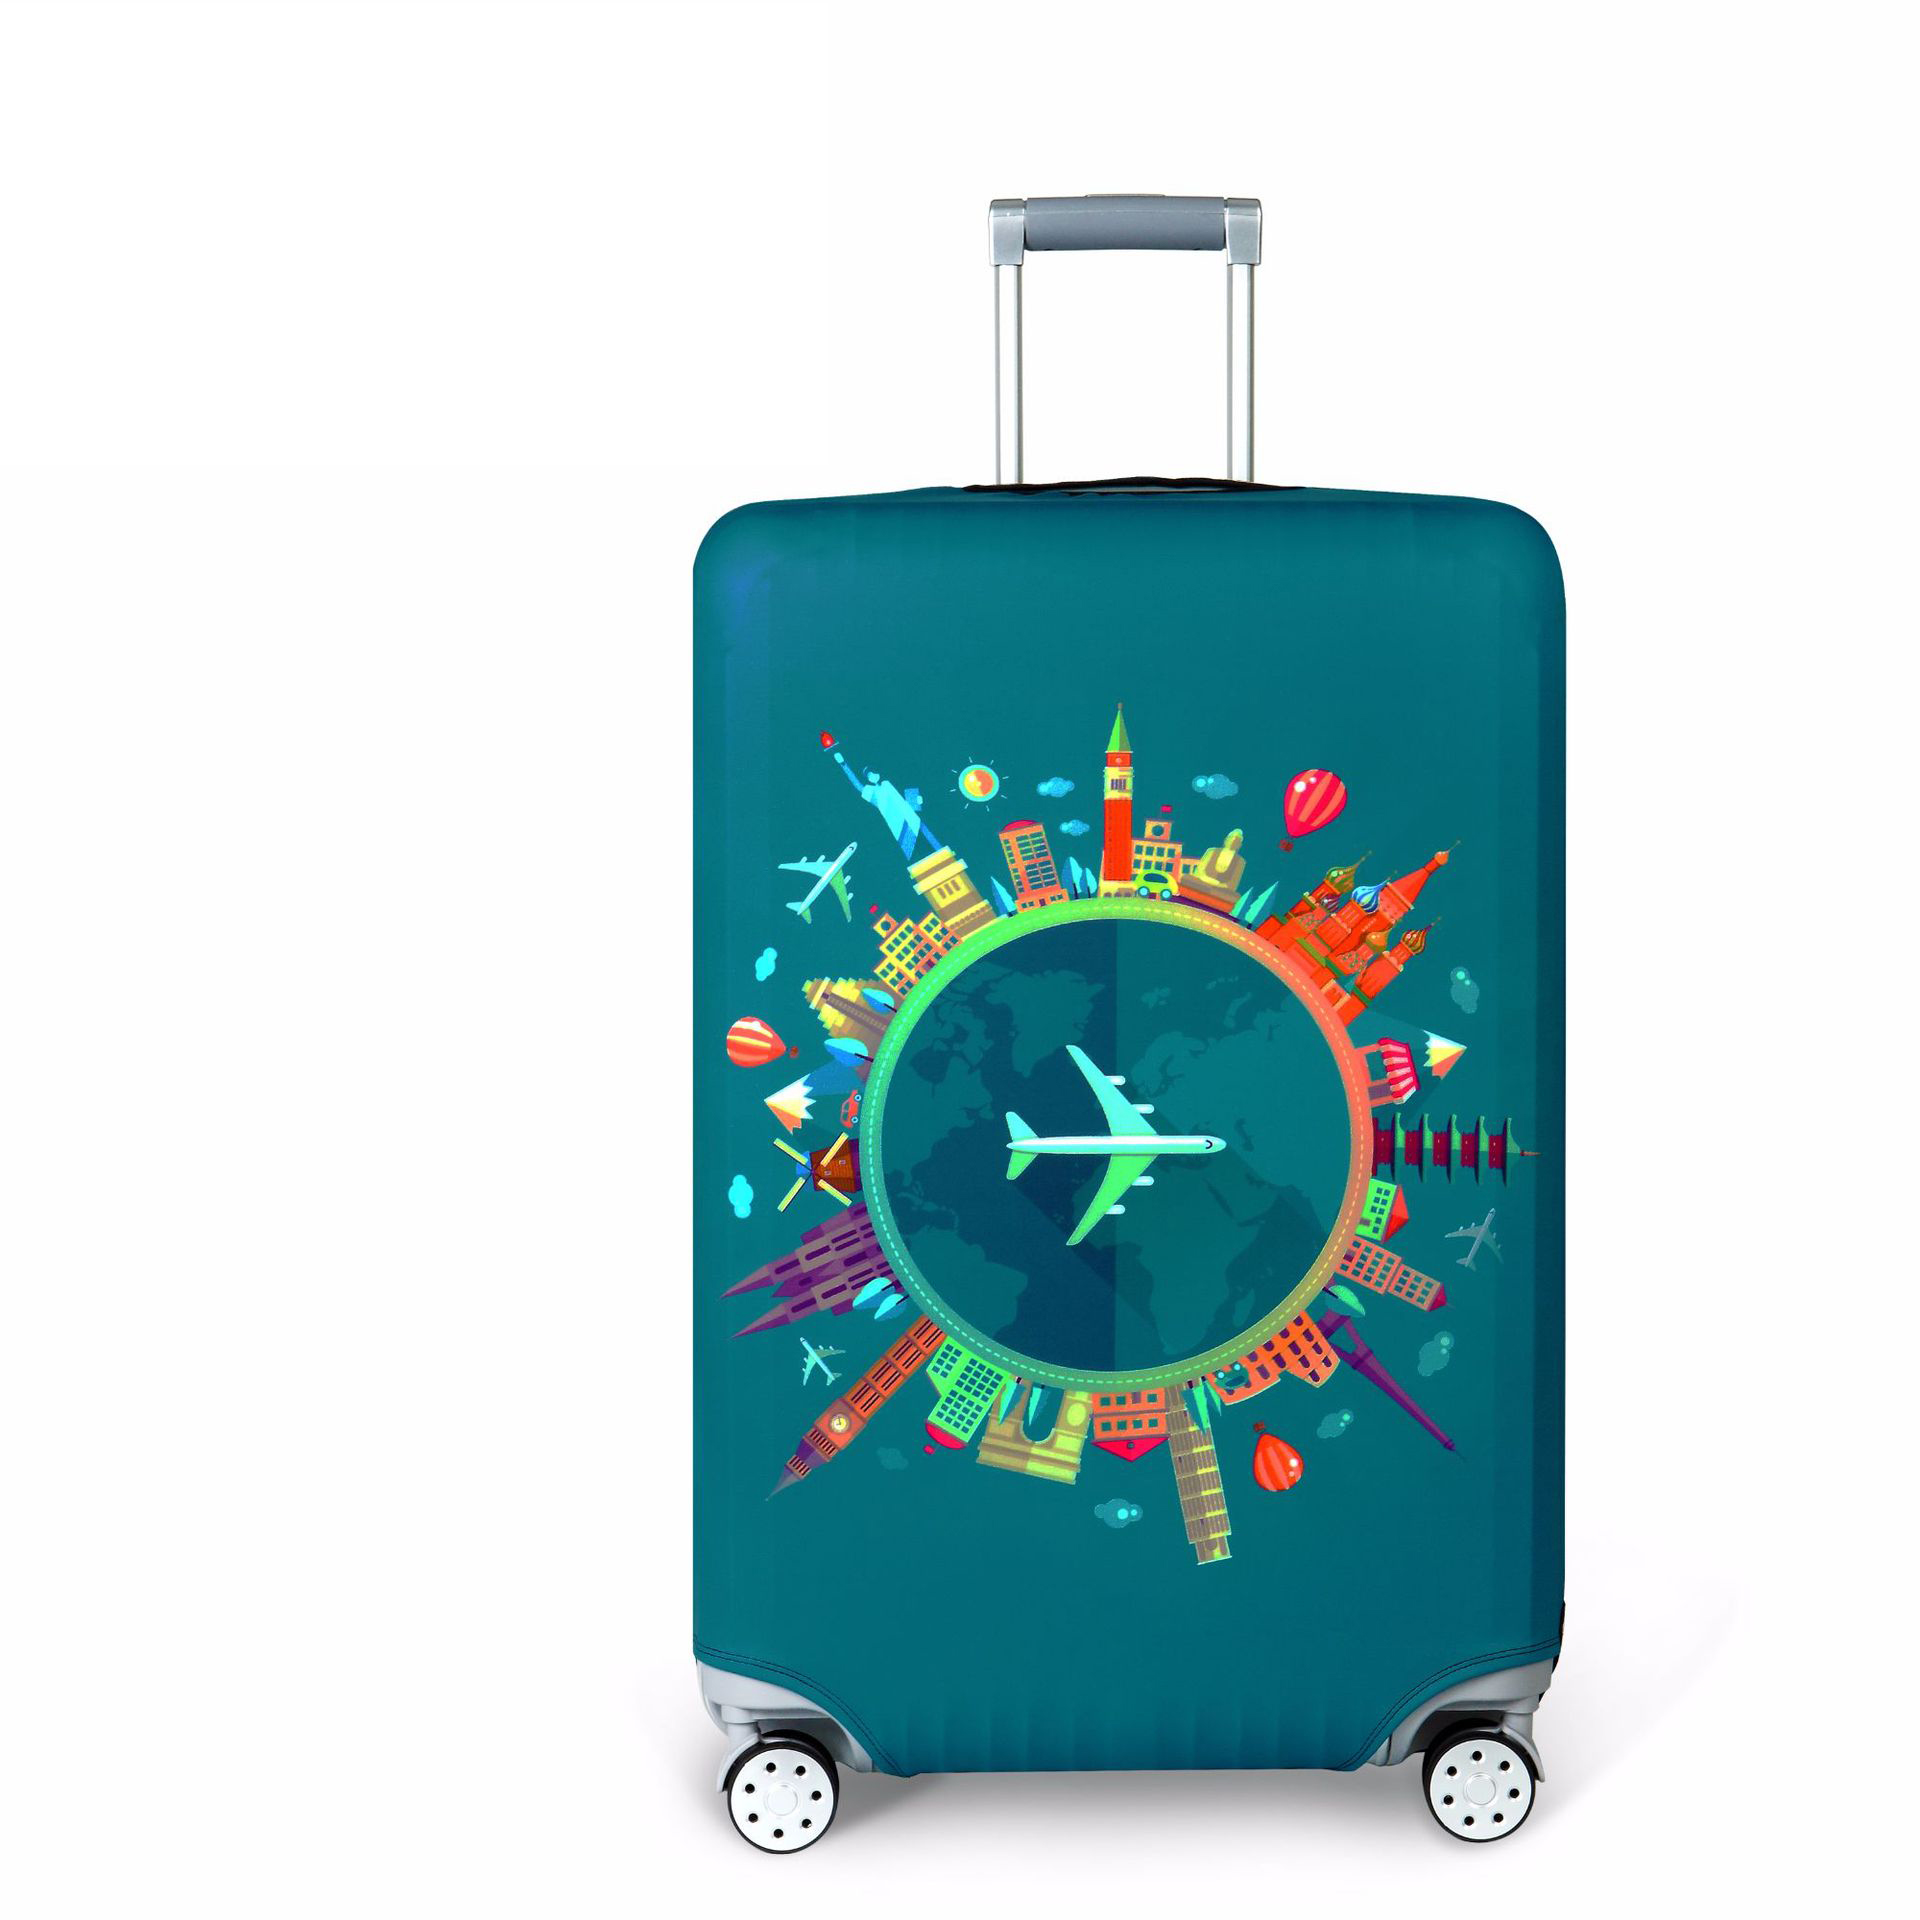 thicker-blue-city-luggage-cover-travel-suitcase-protective-cover-for-trunk-case-apply-to-19''-32''-suitcase-cover-273